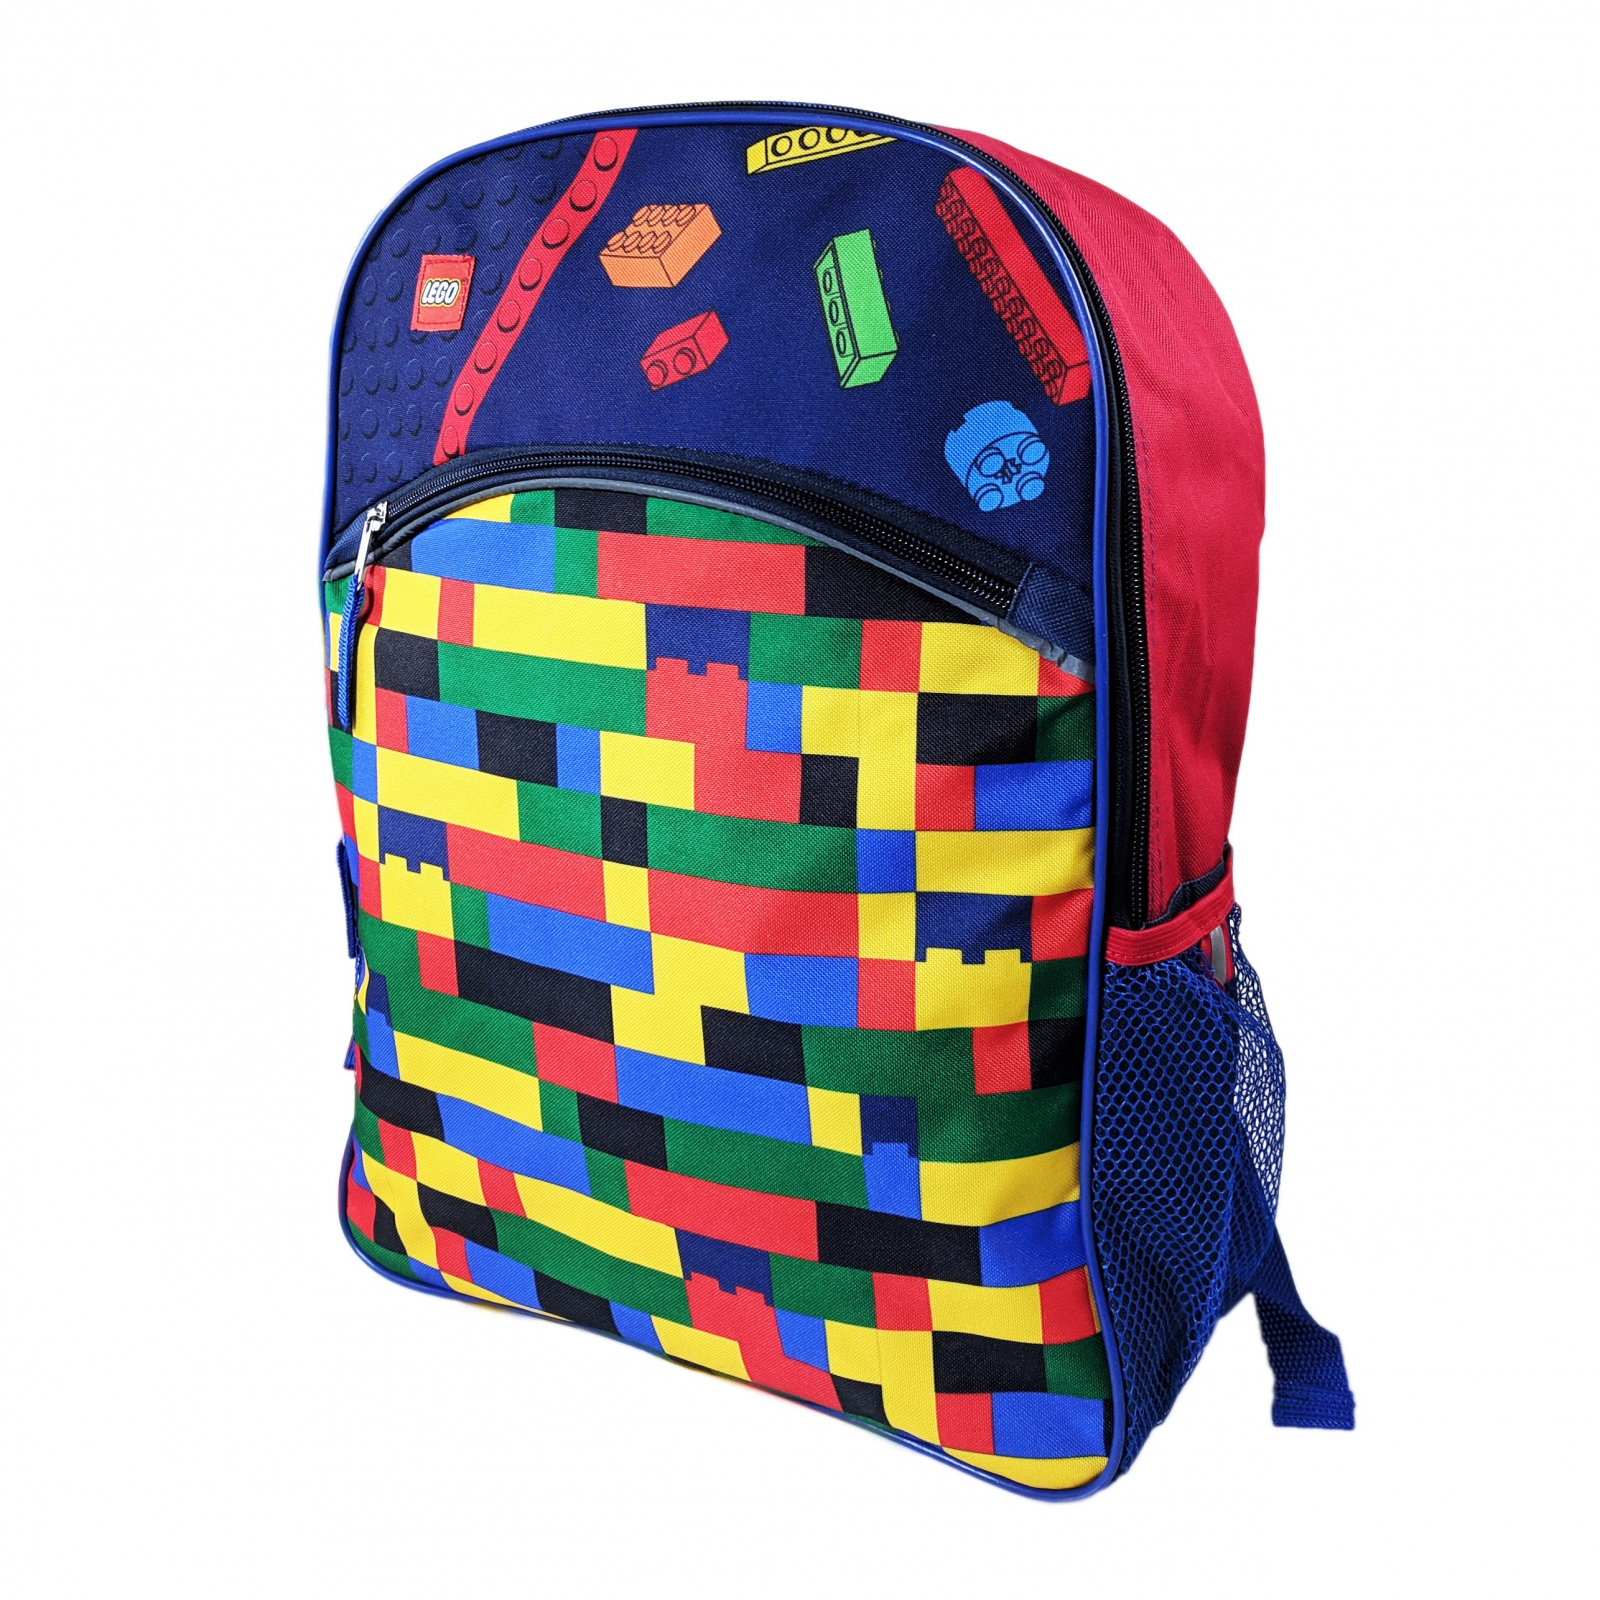 Lego Blocks Kids School Backpack 16 Inch Tall